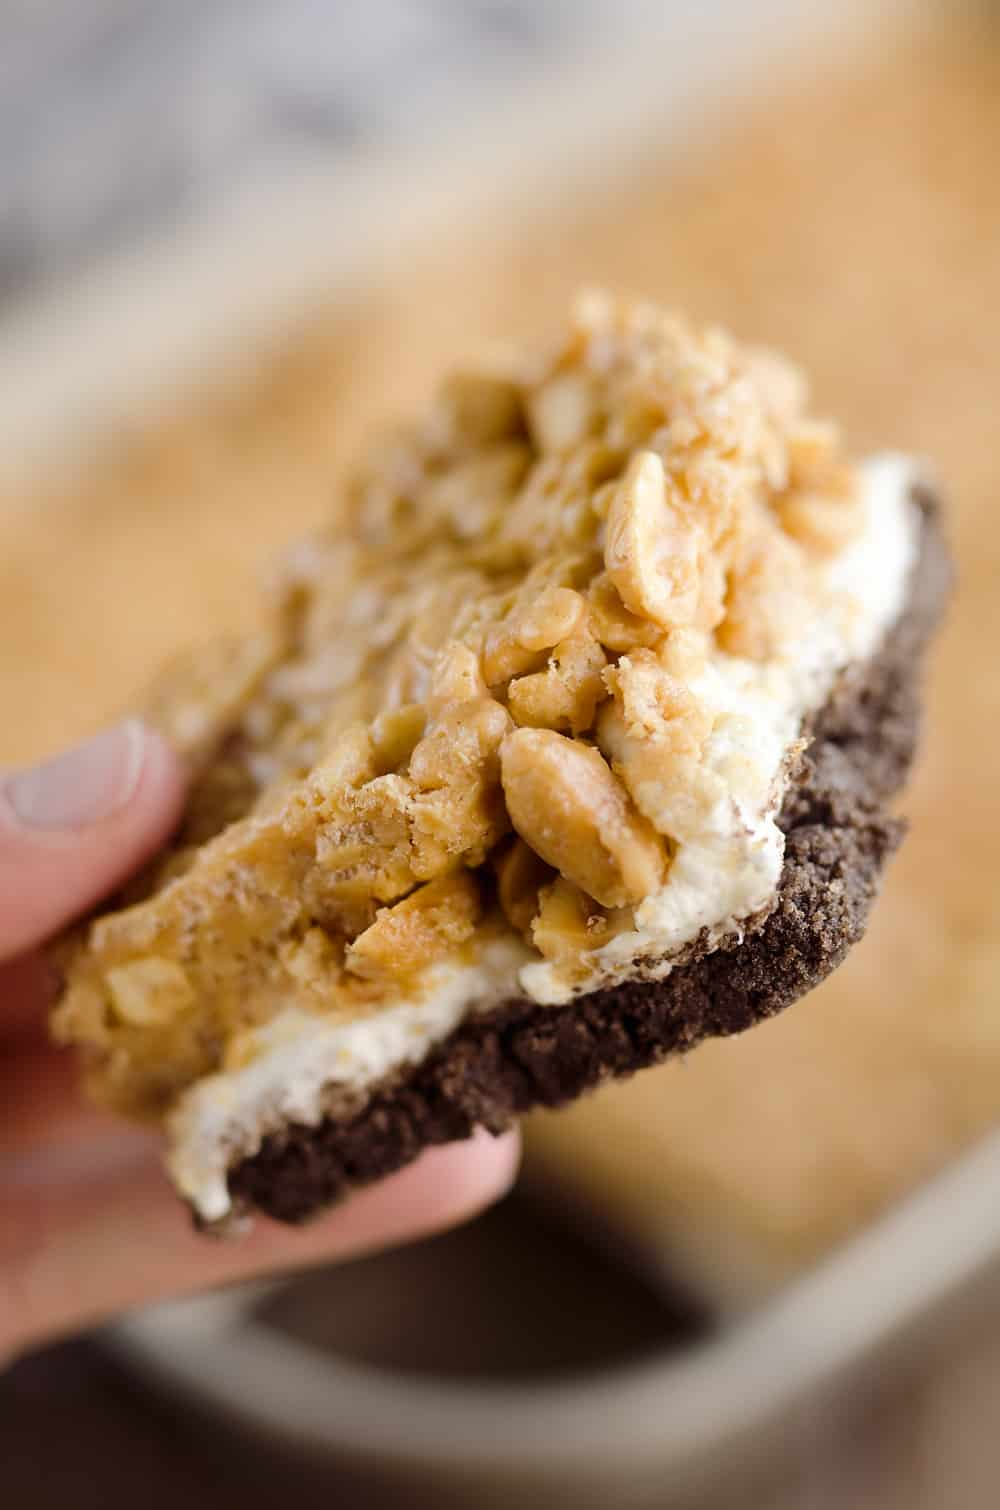 Crunchy Peanut Butter Marshmallow Bars are a sweet and salty dessert everyone will love! A chocolate crust is topped with marshmallows and a crunchy peanut butter and rice crispie mixture for a delicious treat.